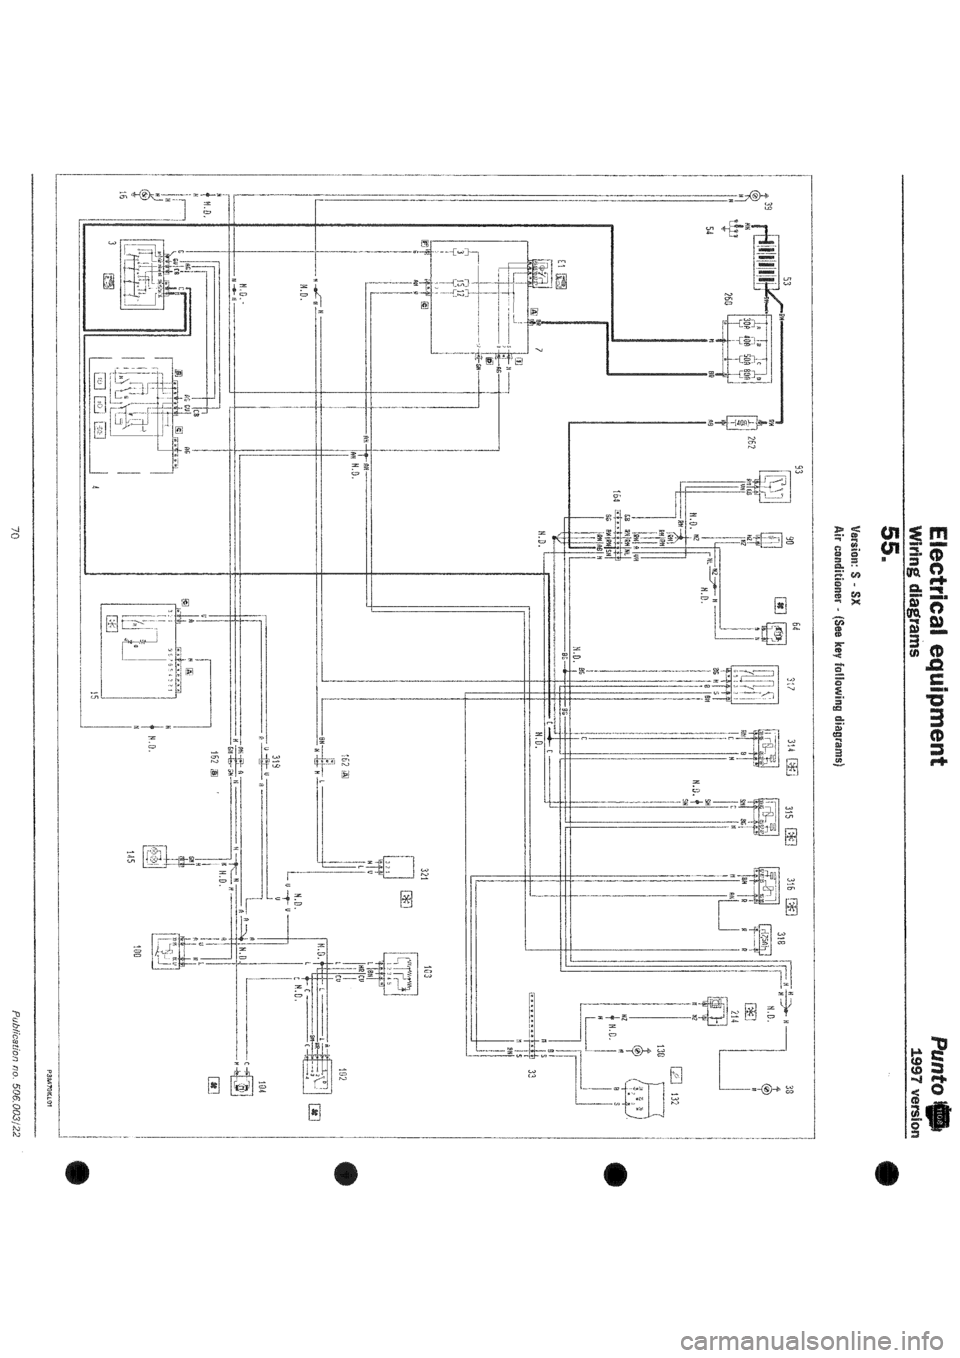 [DIAGRAM] Fiat Palio Wiring Diagram FULL Version HD